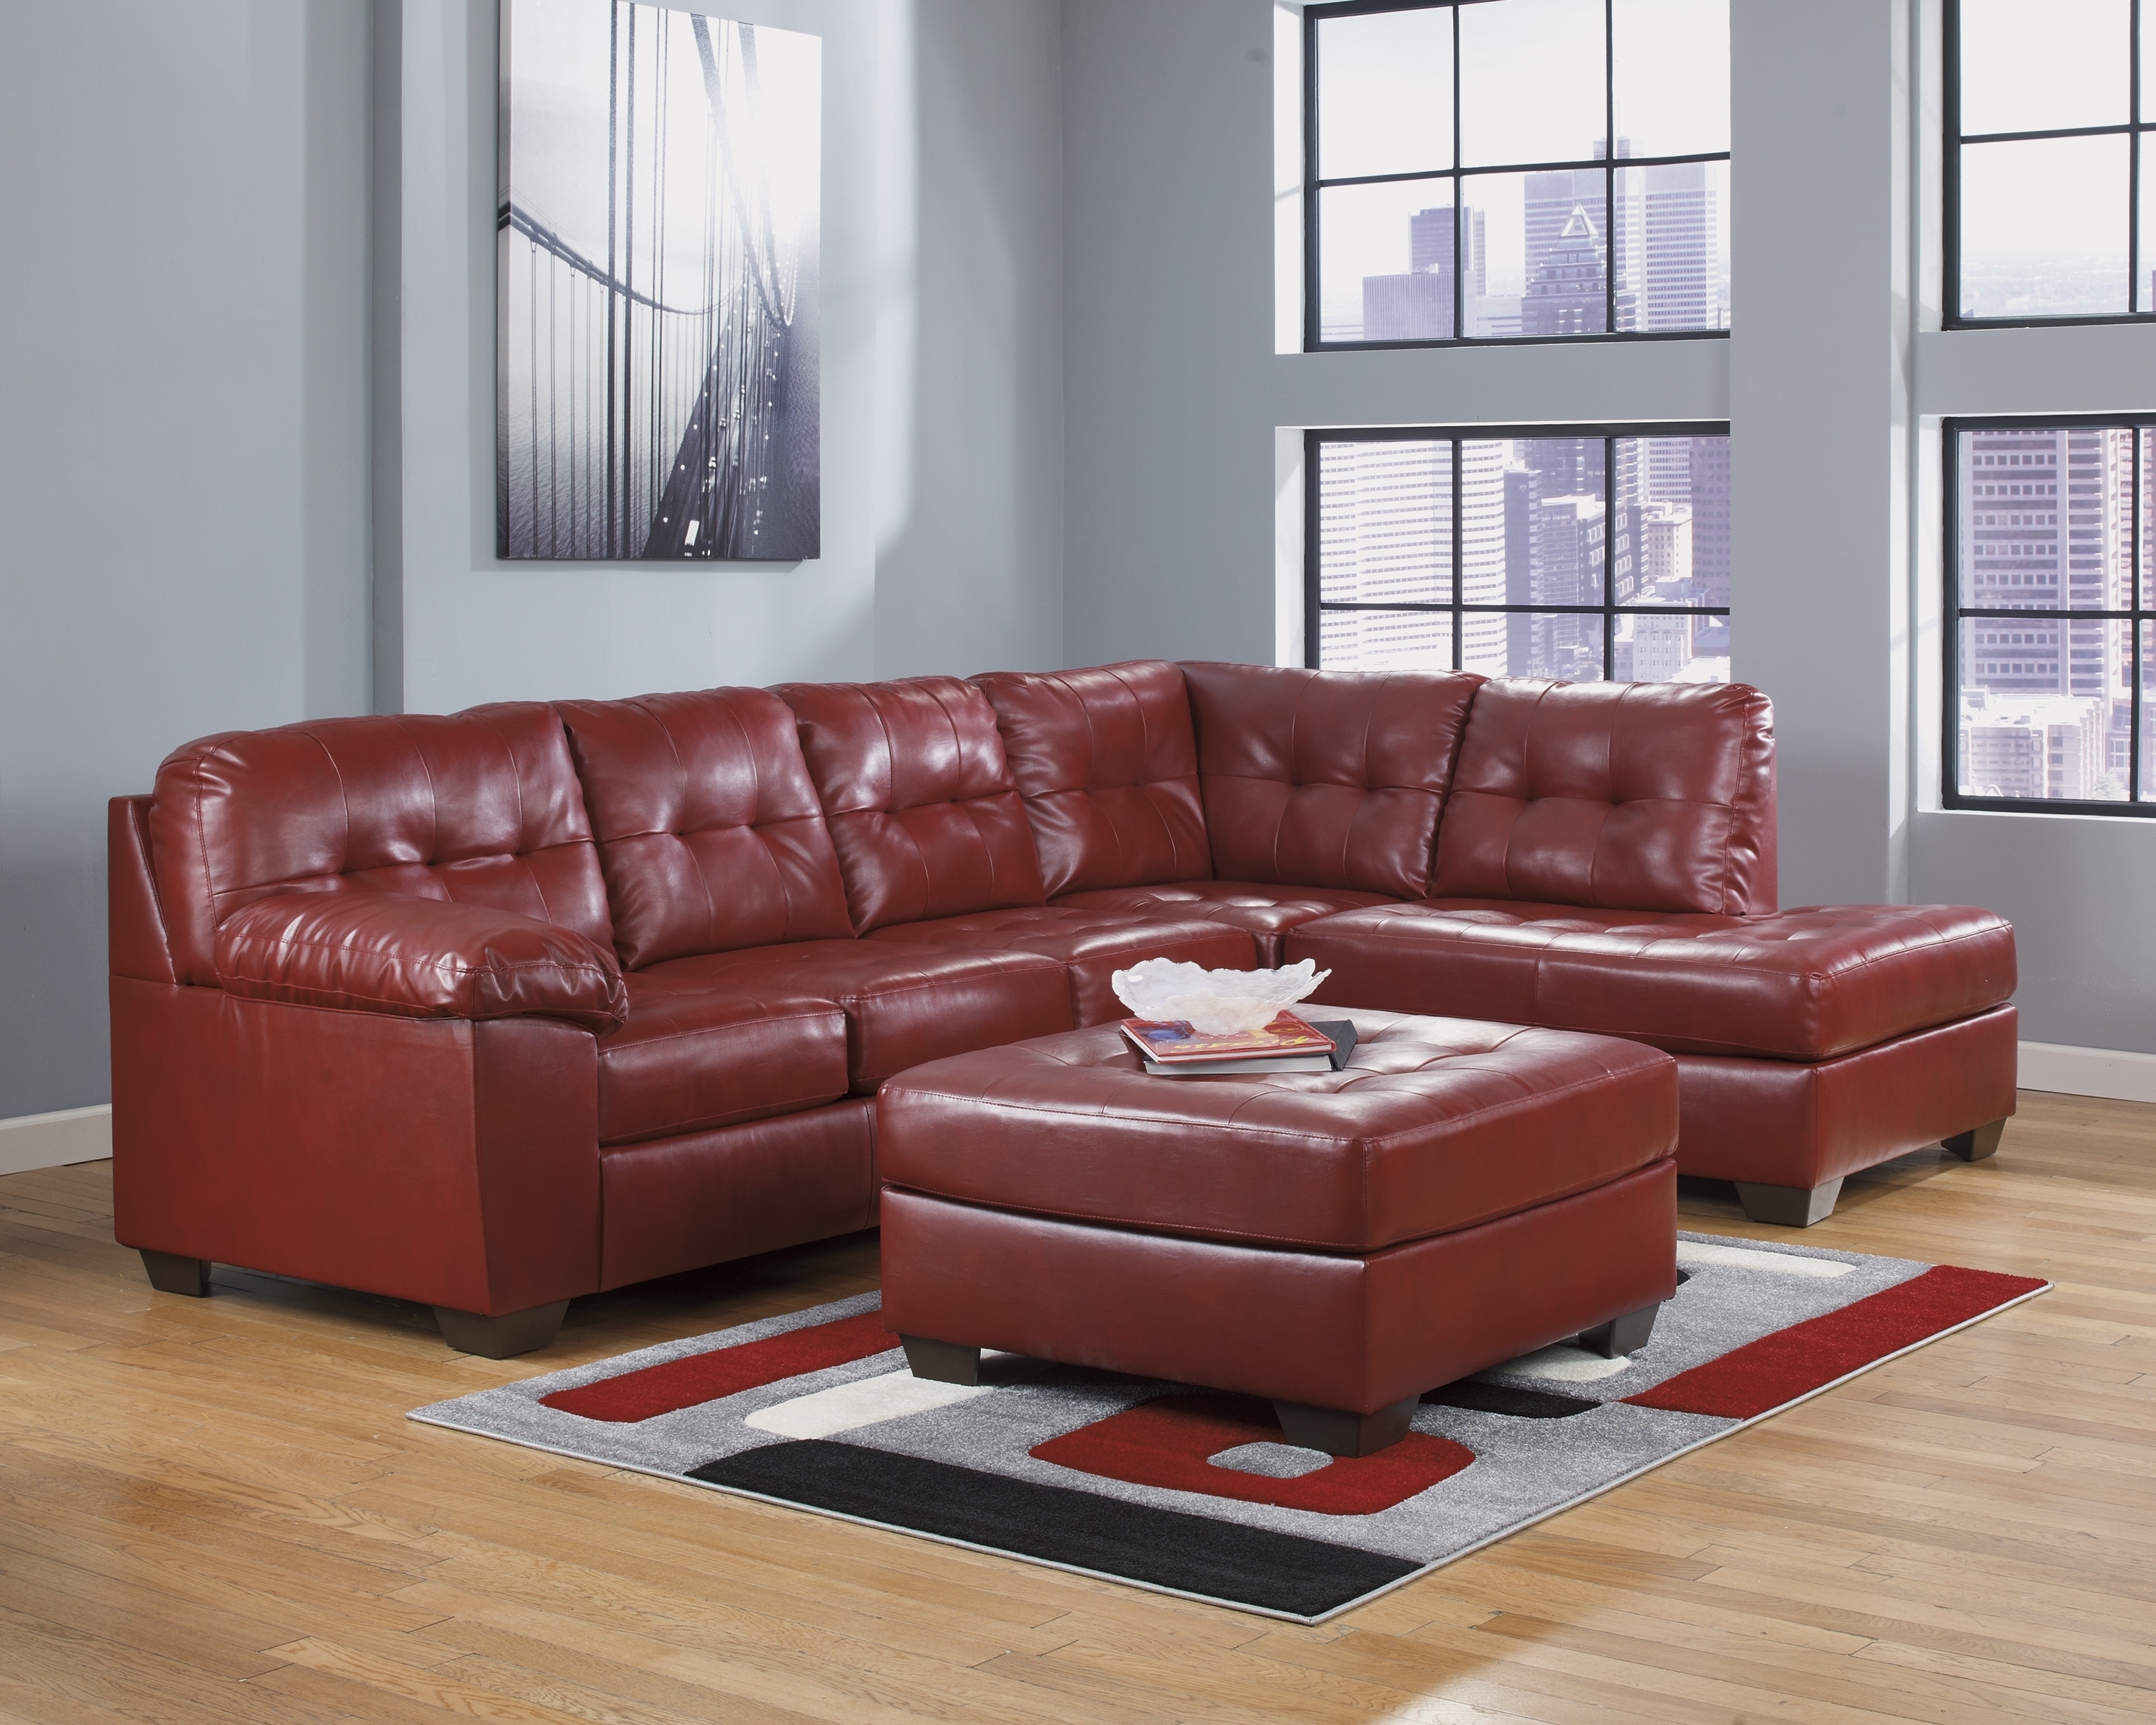 Newest Furniture: Ashley Furniture Sectional Sofas For Elegant Interior In Red Leather Sectional Sofas With Ottoman (View 19 of 20)